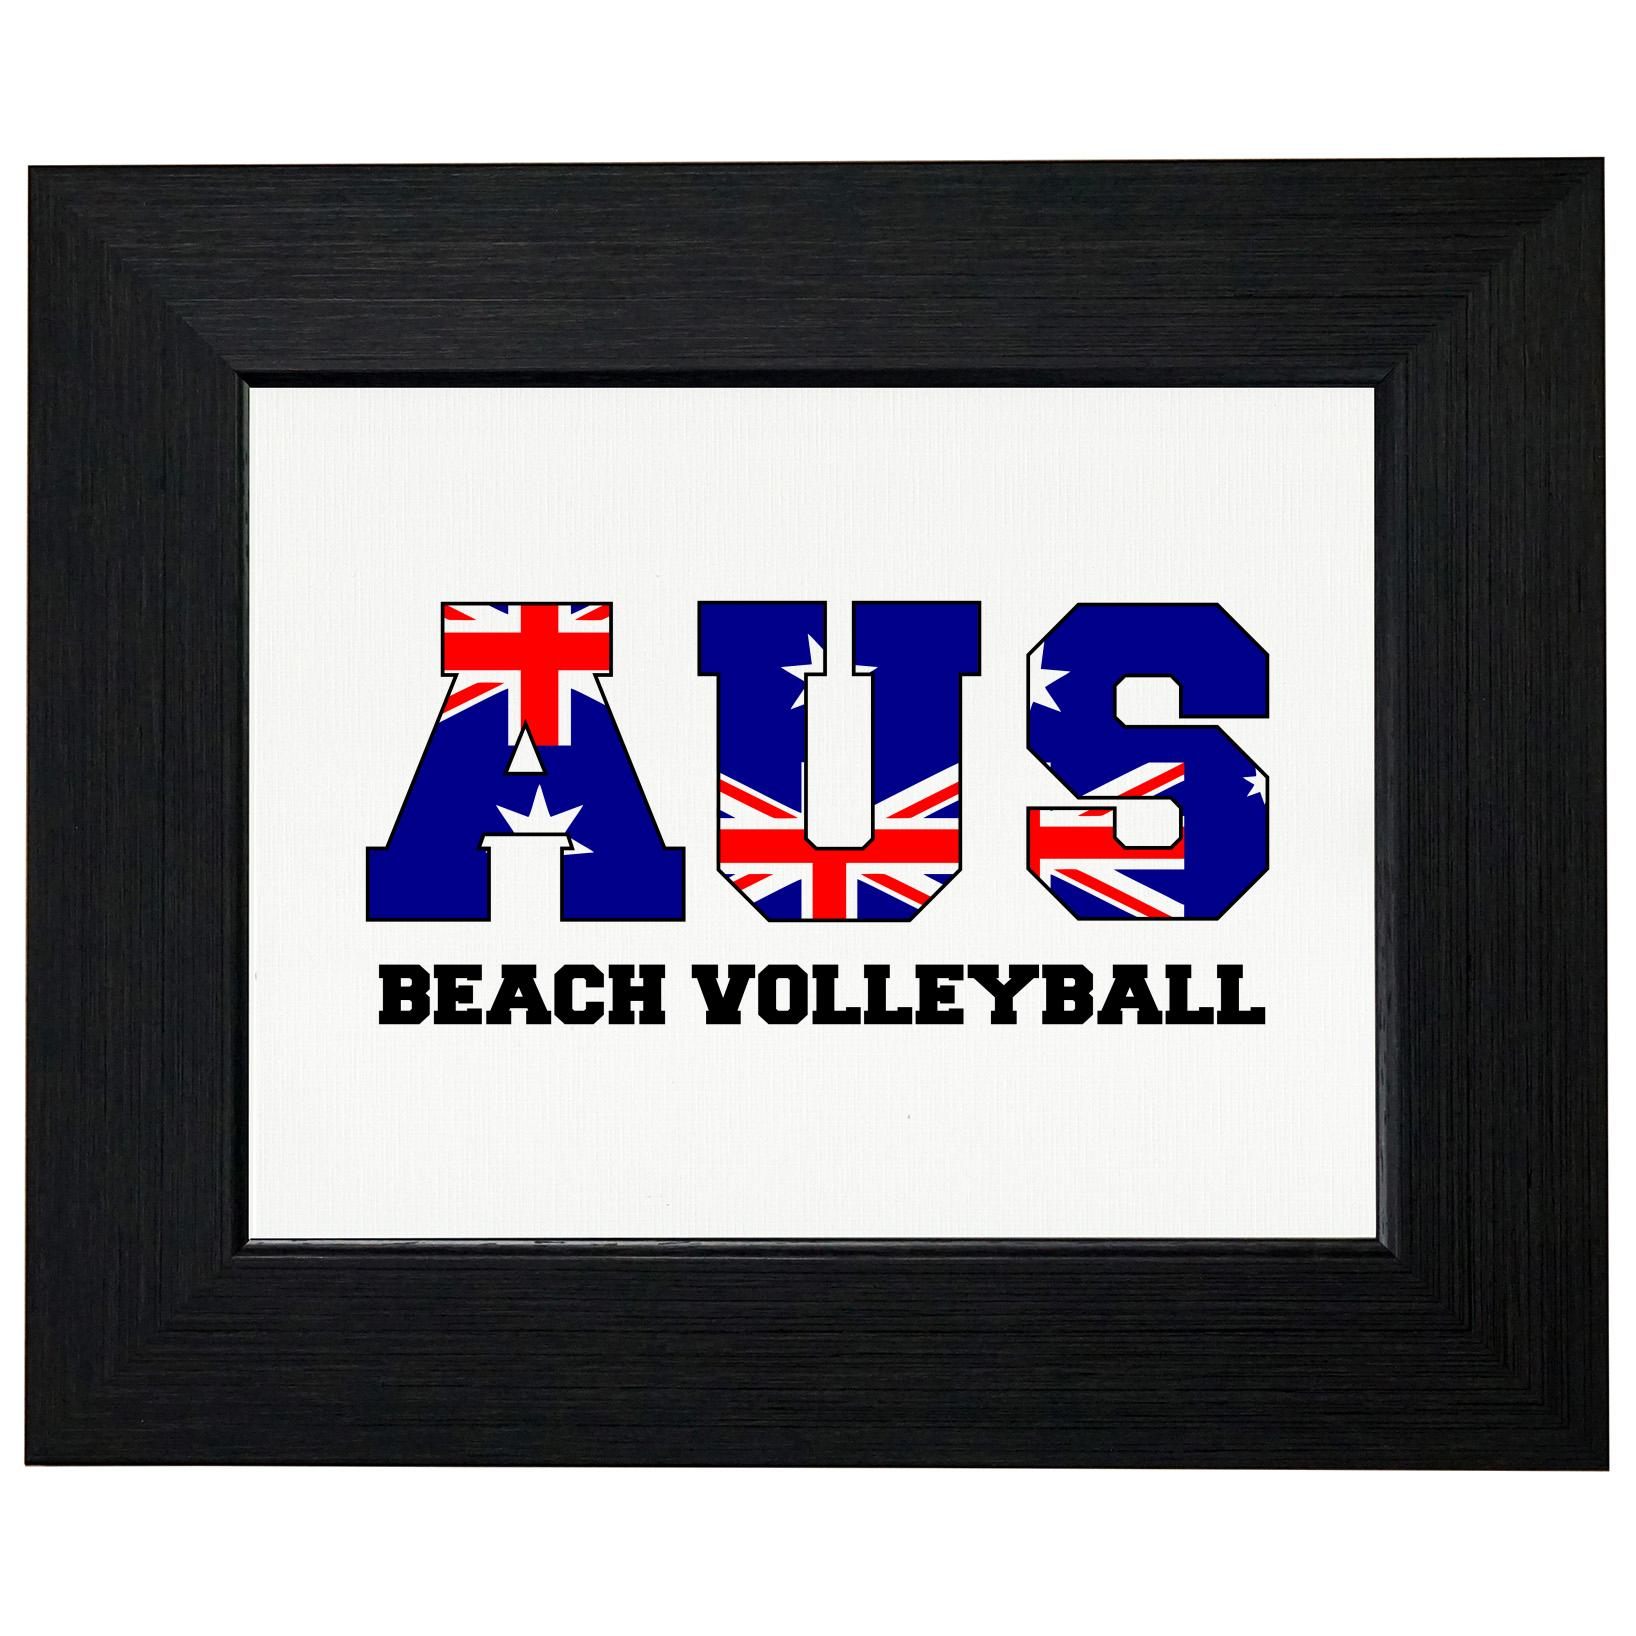 Australia Beach Volleyball Olympic Games Rio Flag Framed Print Poster Wall or Desk Mount Options by Royal Prints